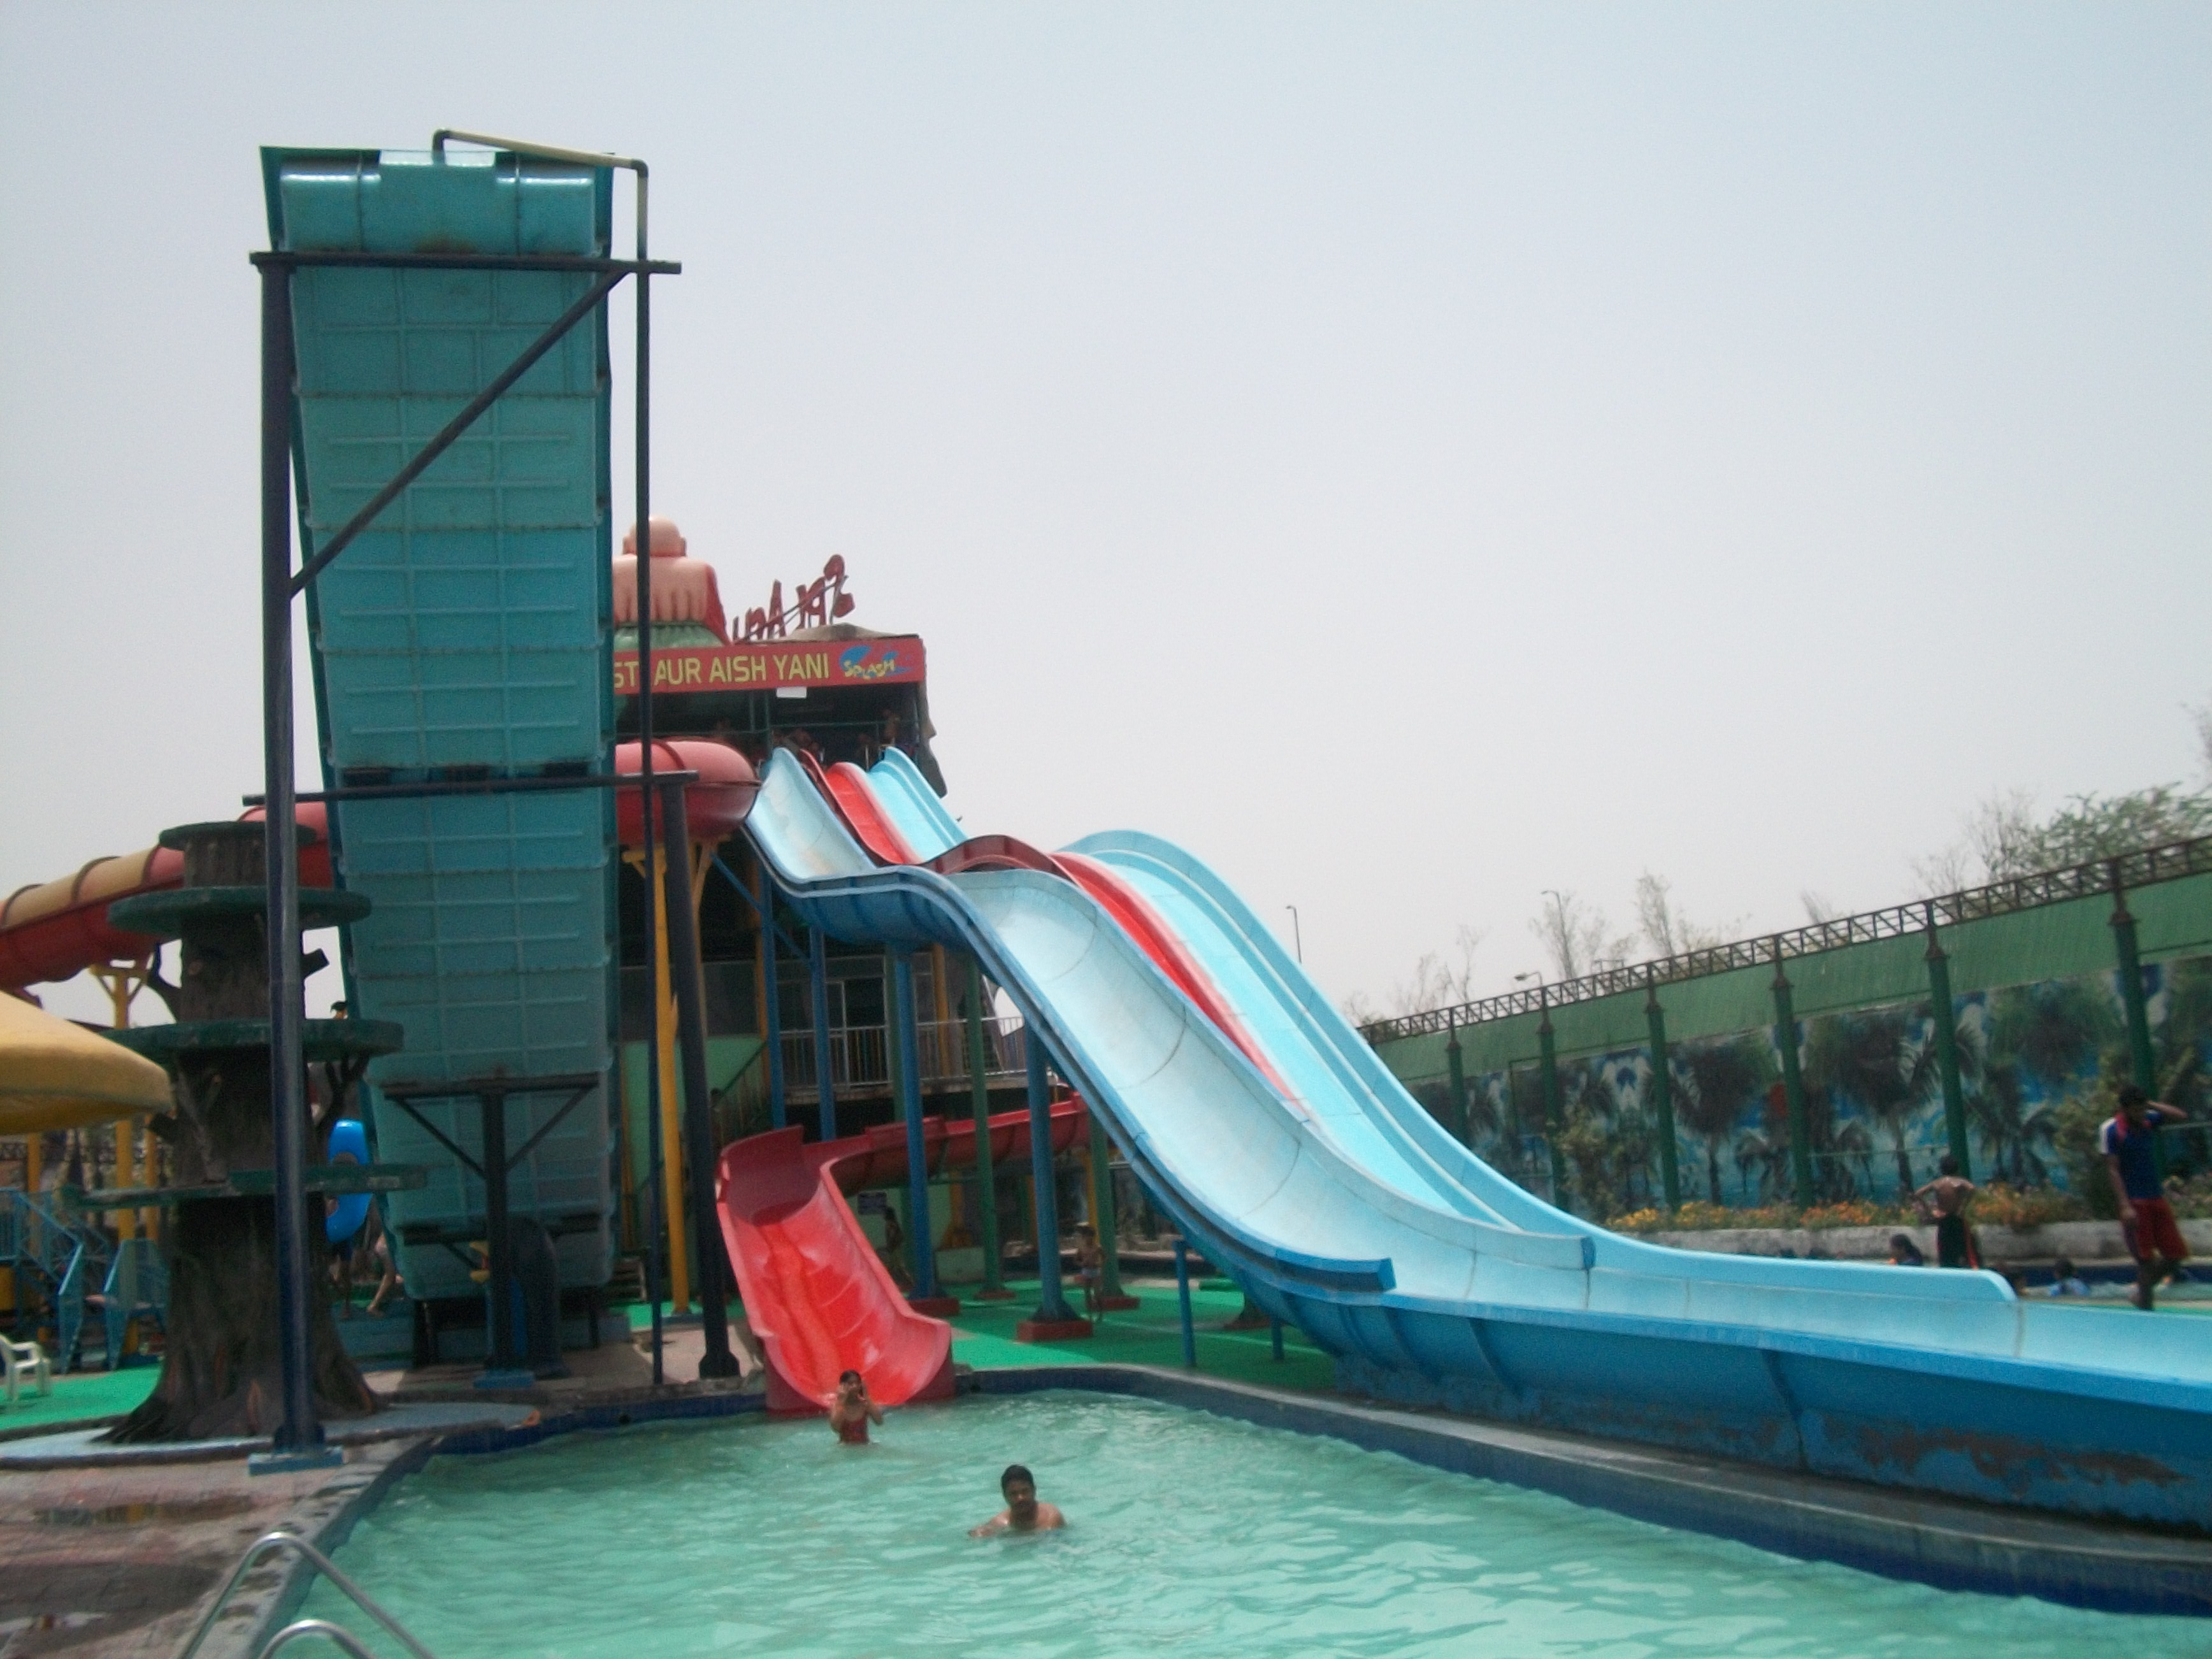 Splash water park delhi photos images and wallpapers hd images splash water park delhi image altavistaventures Gallery